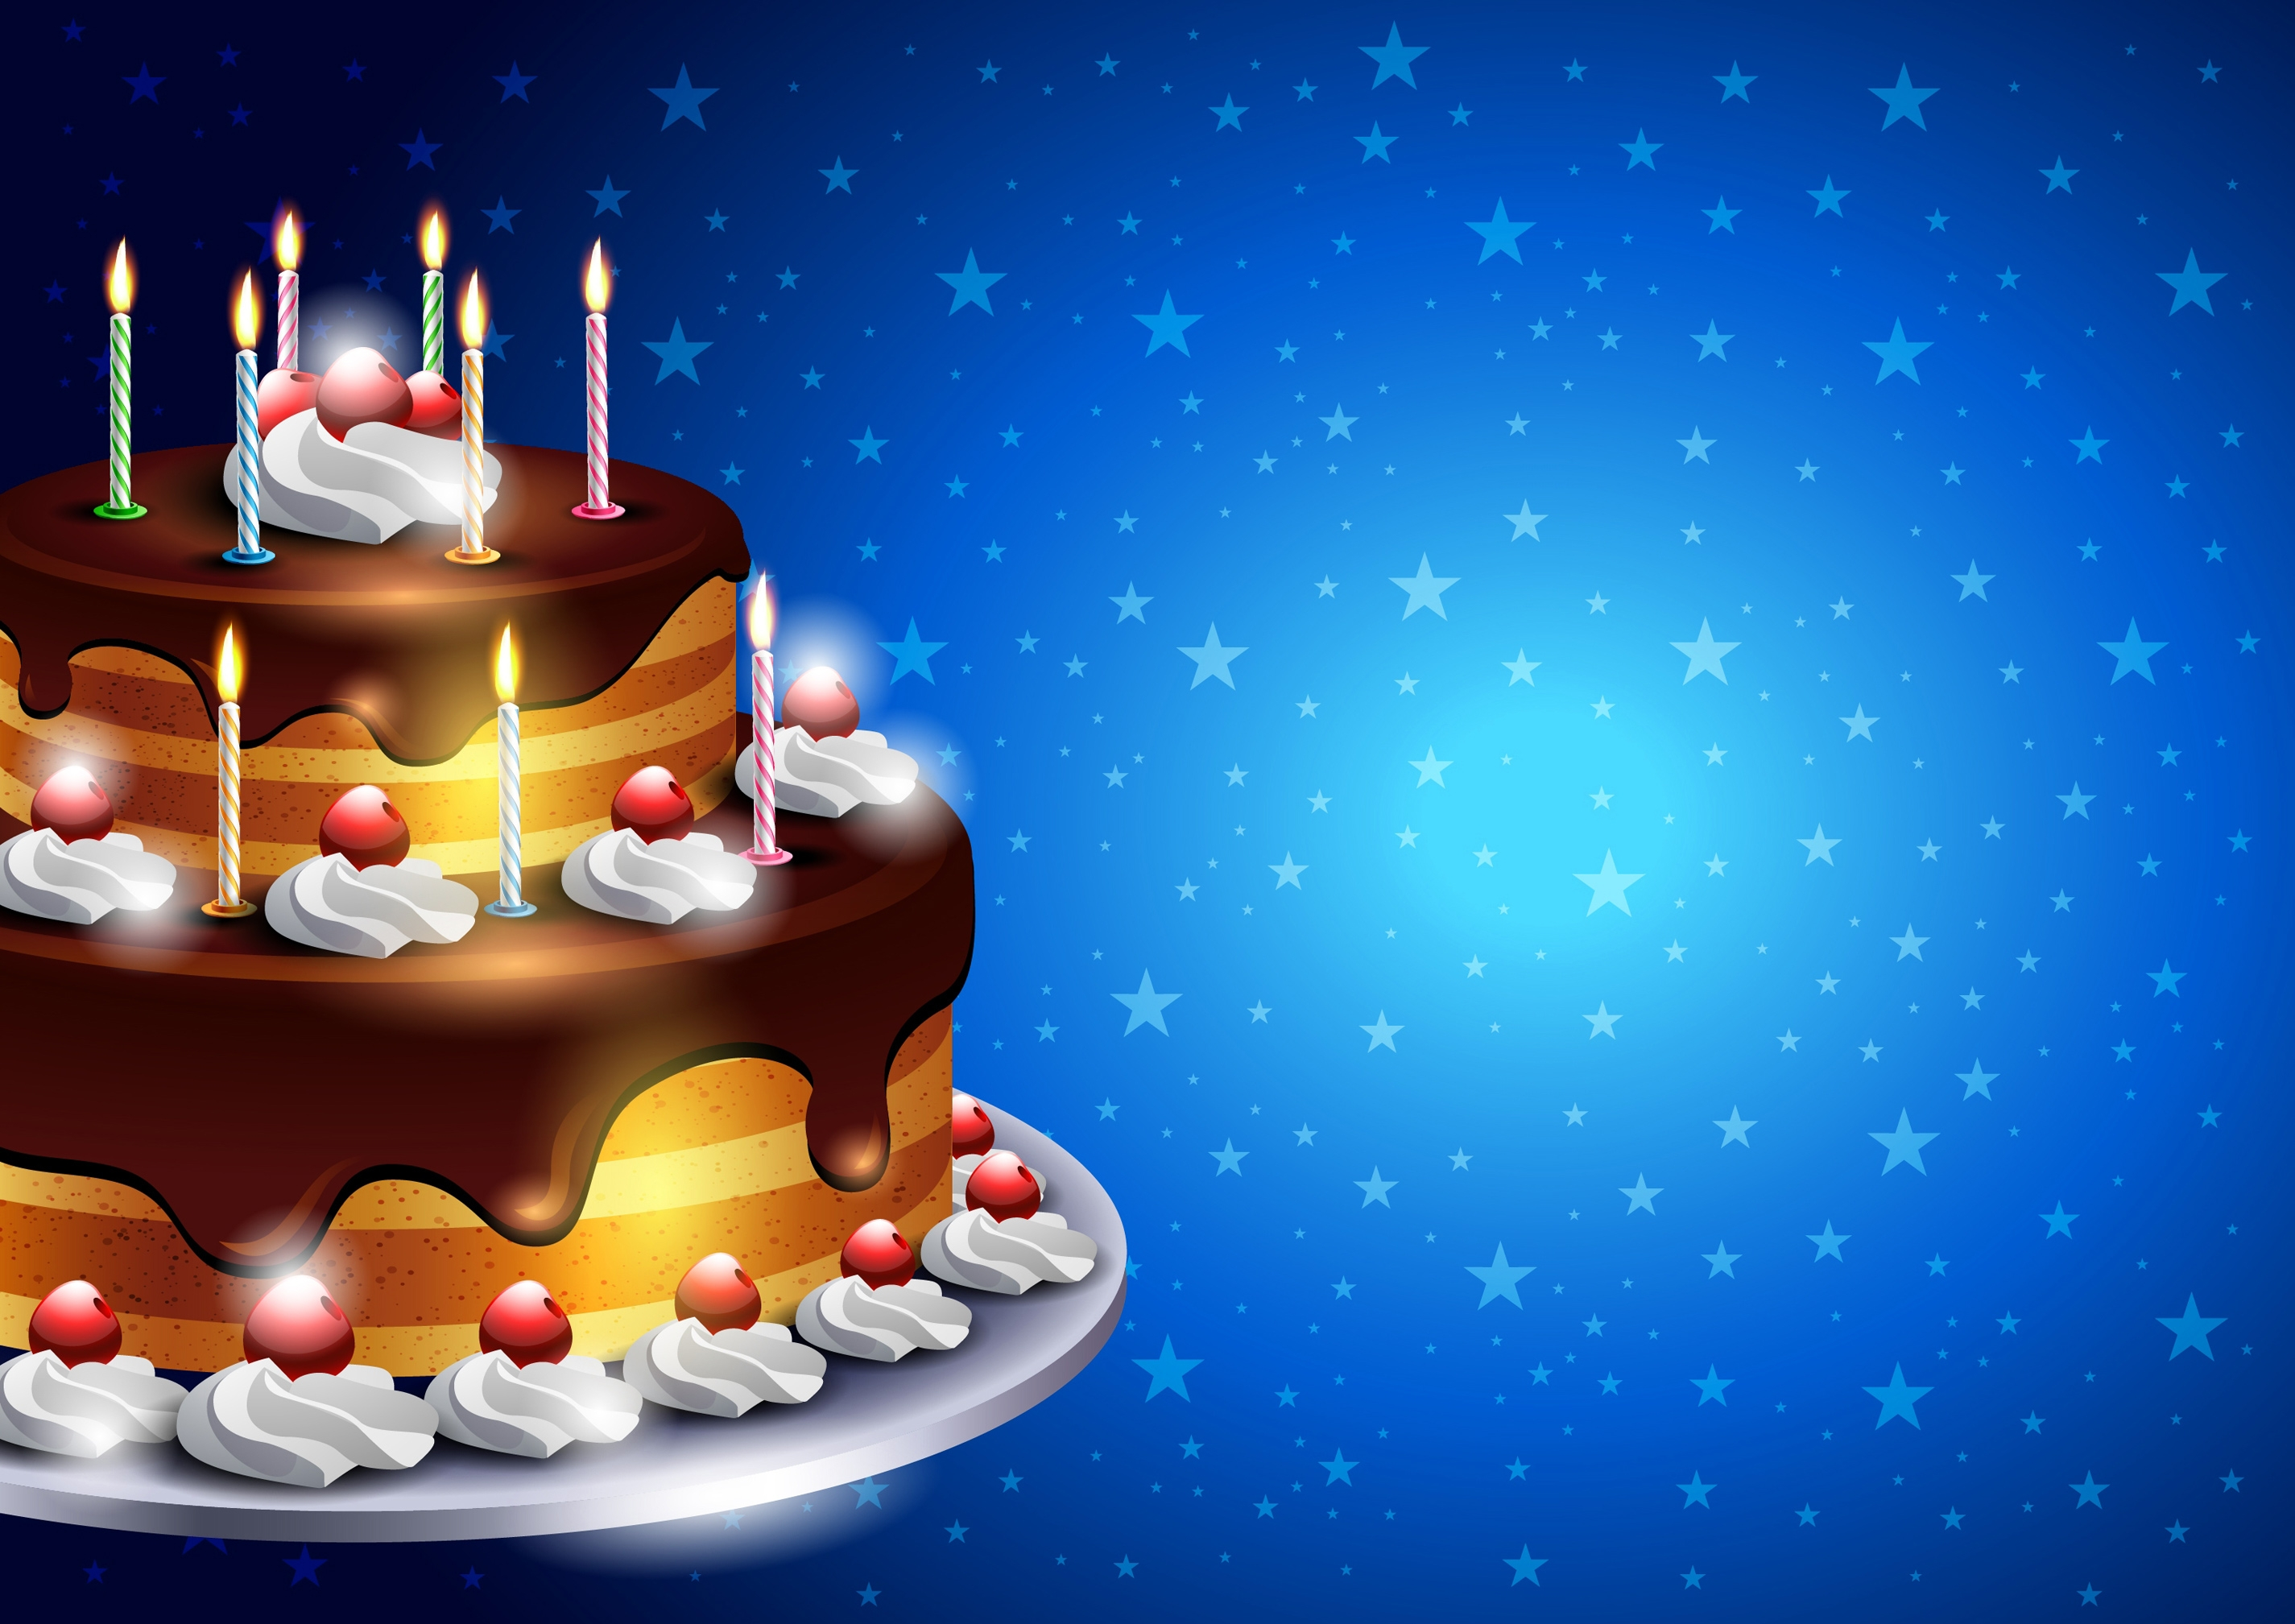 hd birthday backgrounds for photoshop ; birthday%2520background%2520wallpaper%2520hd%2520;%2520birthday-background-images-view-full-size